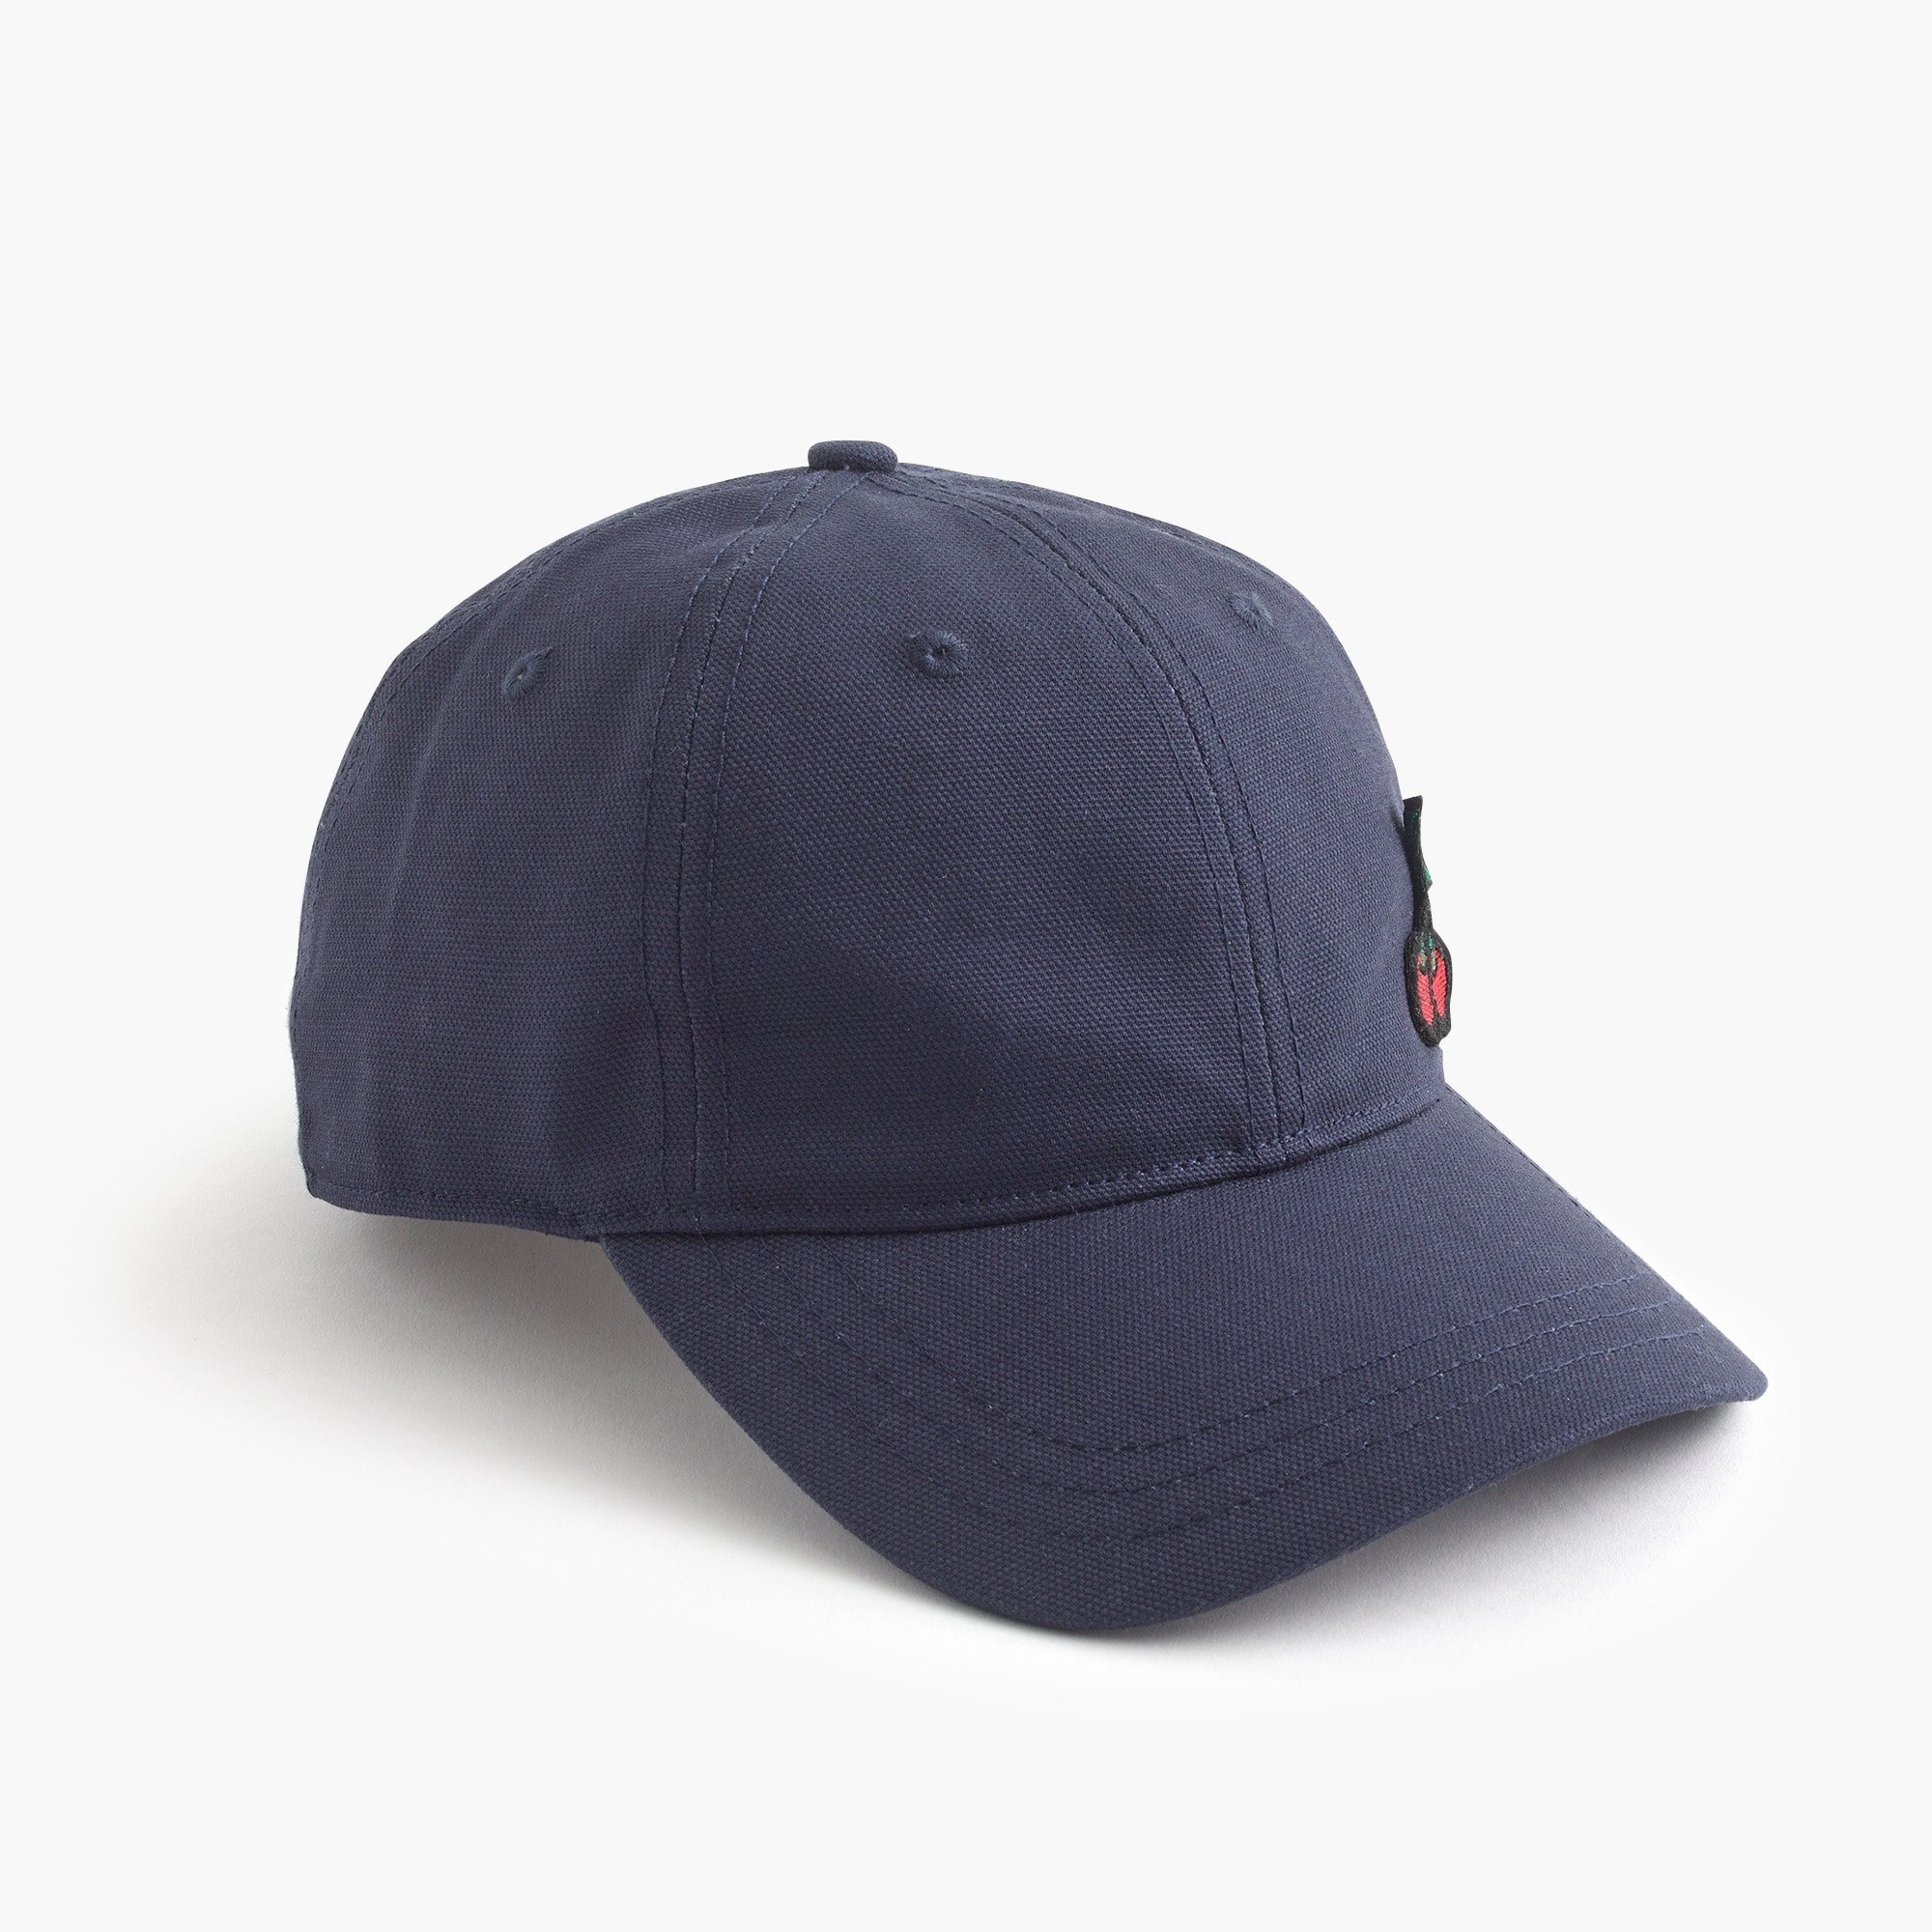 Image 2 for Baseball cap with cherry patch